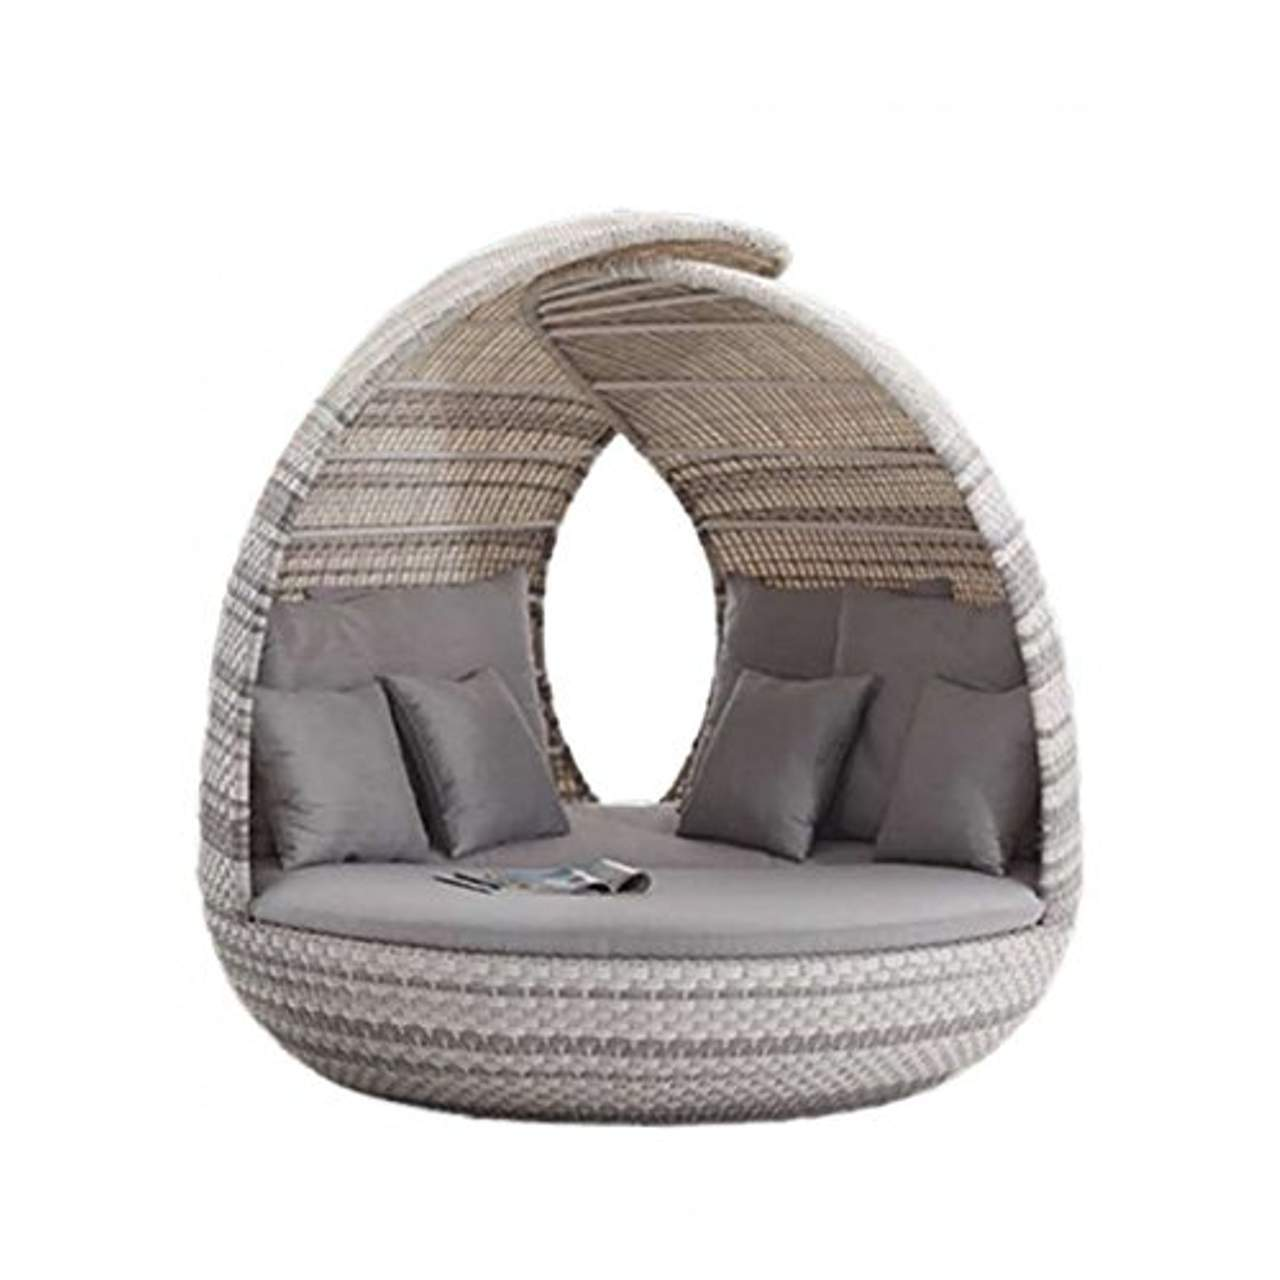 liegeinsel piccadilly lounge white wash duo weaving sonneninsel